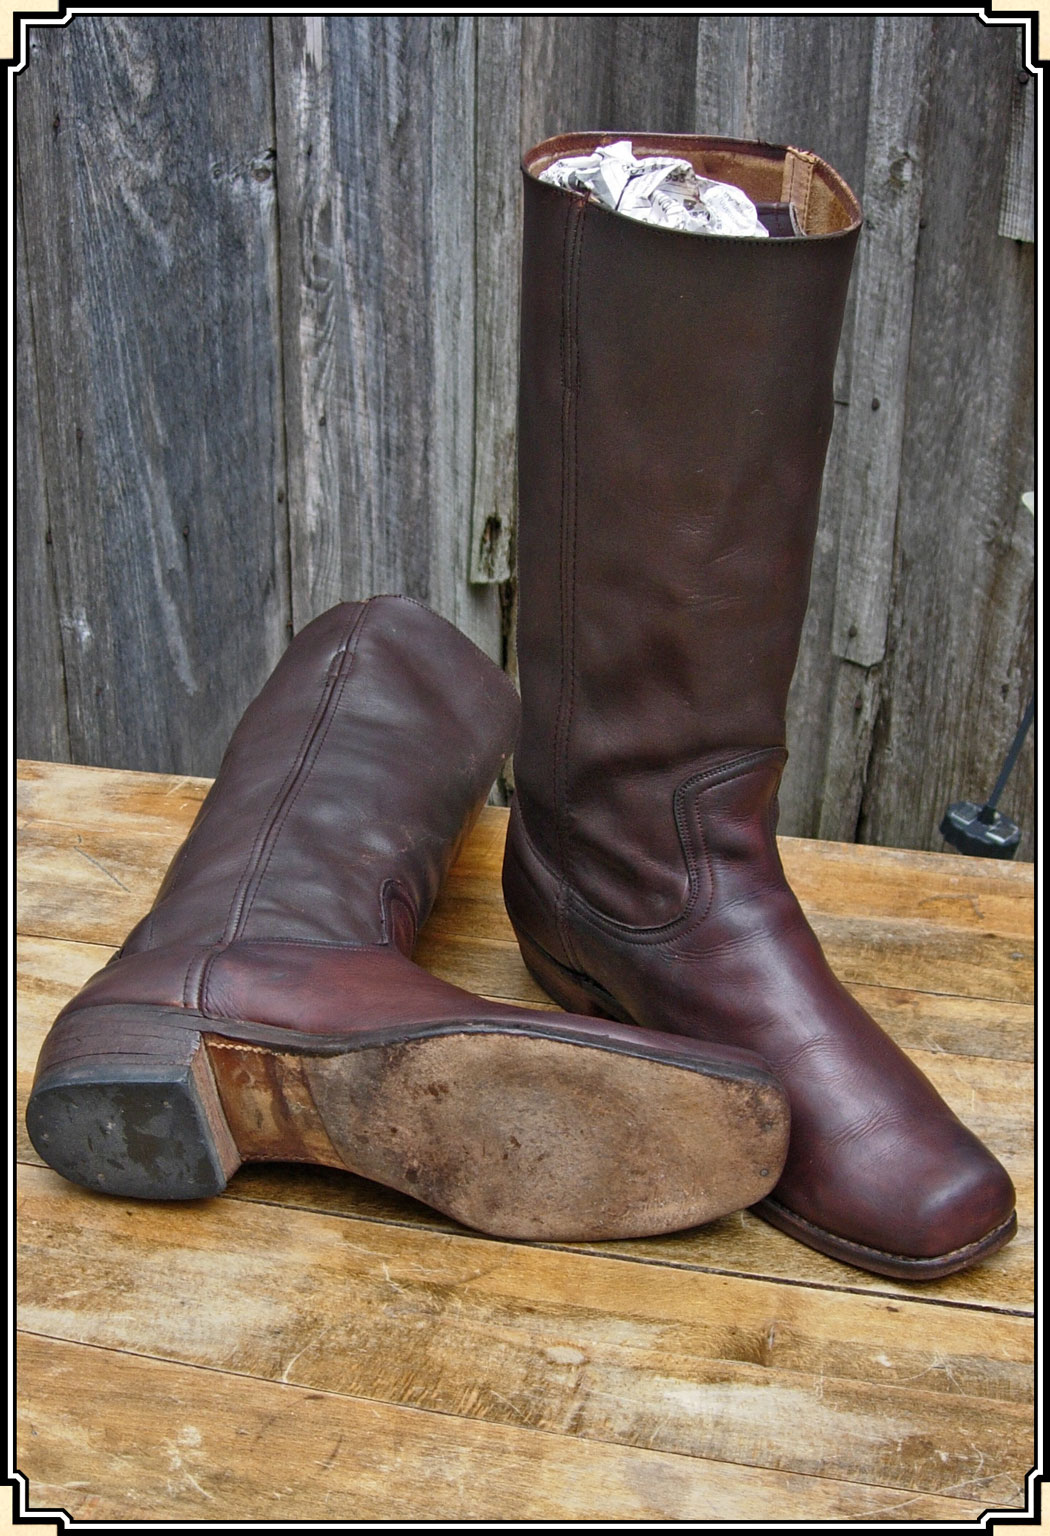 Sold Nice Old West Period Style Boots